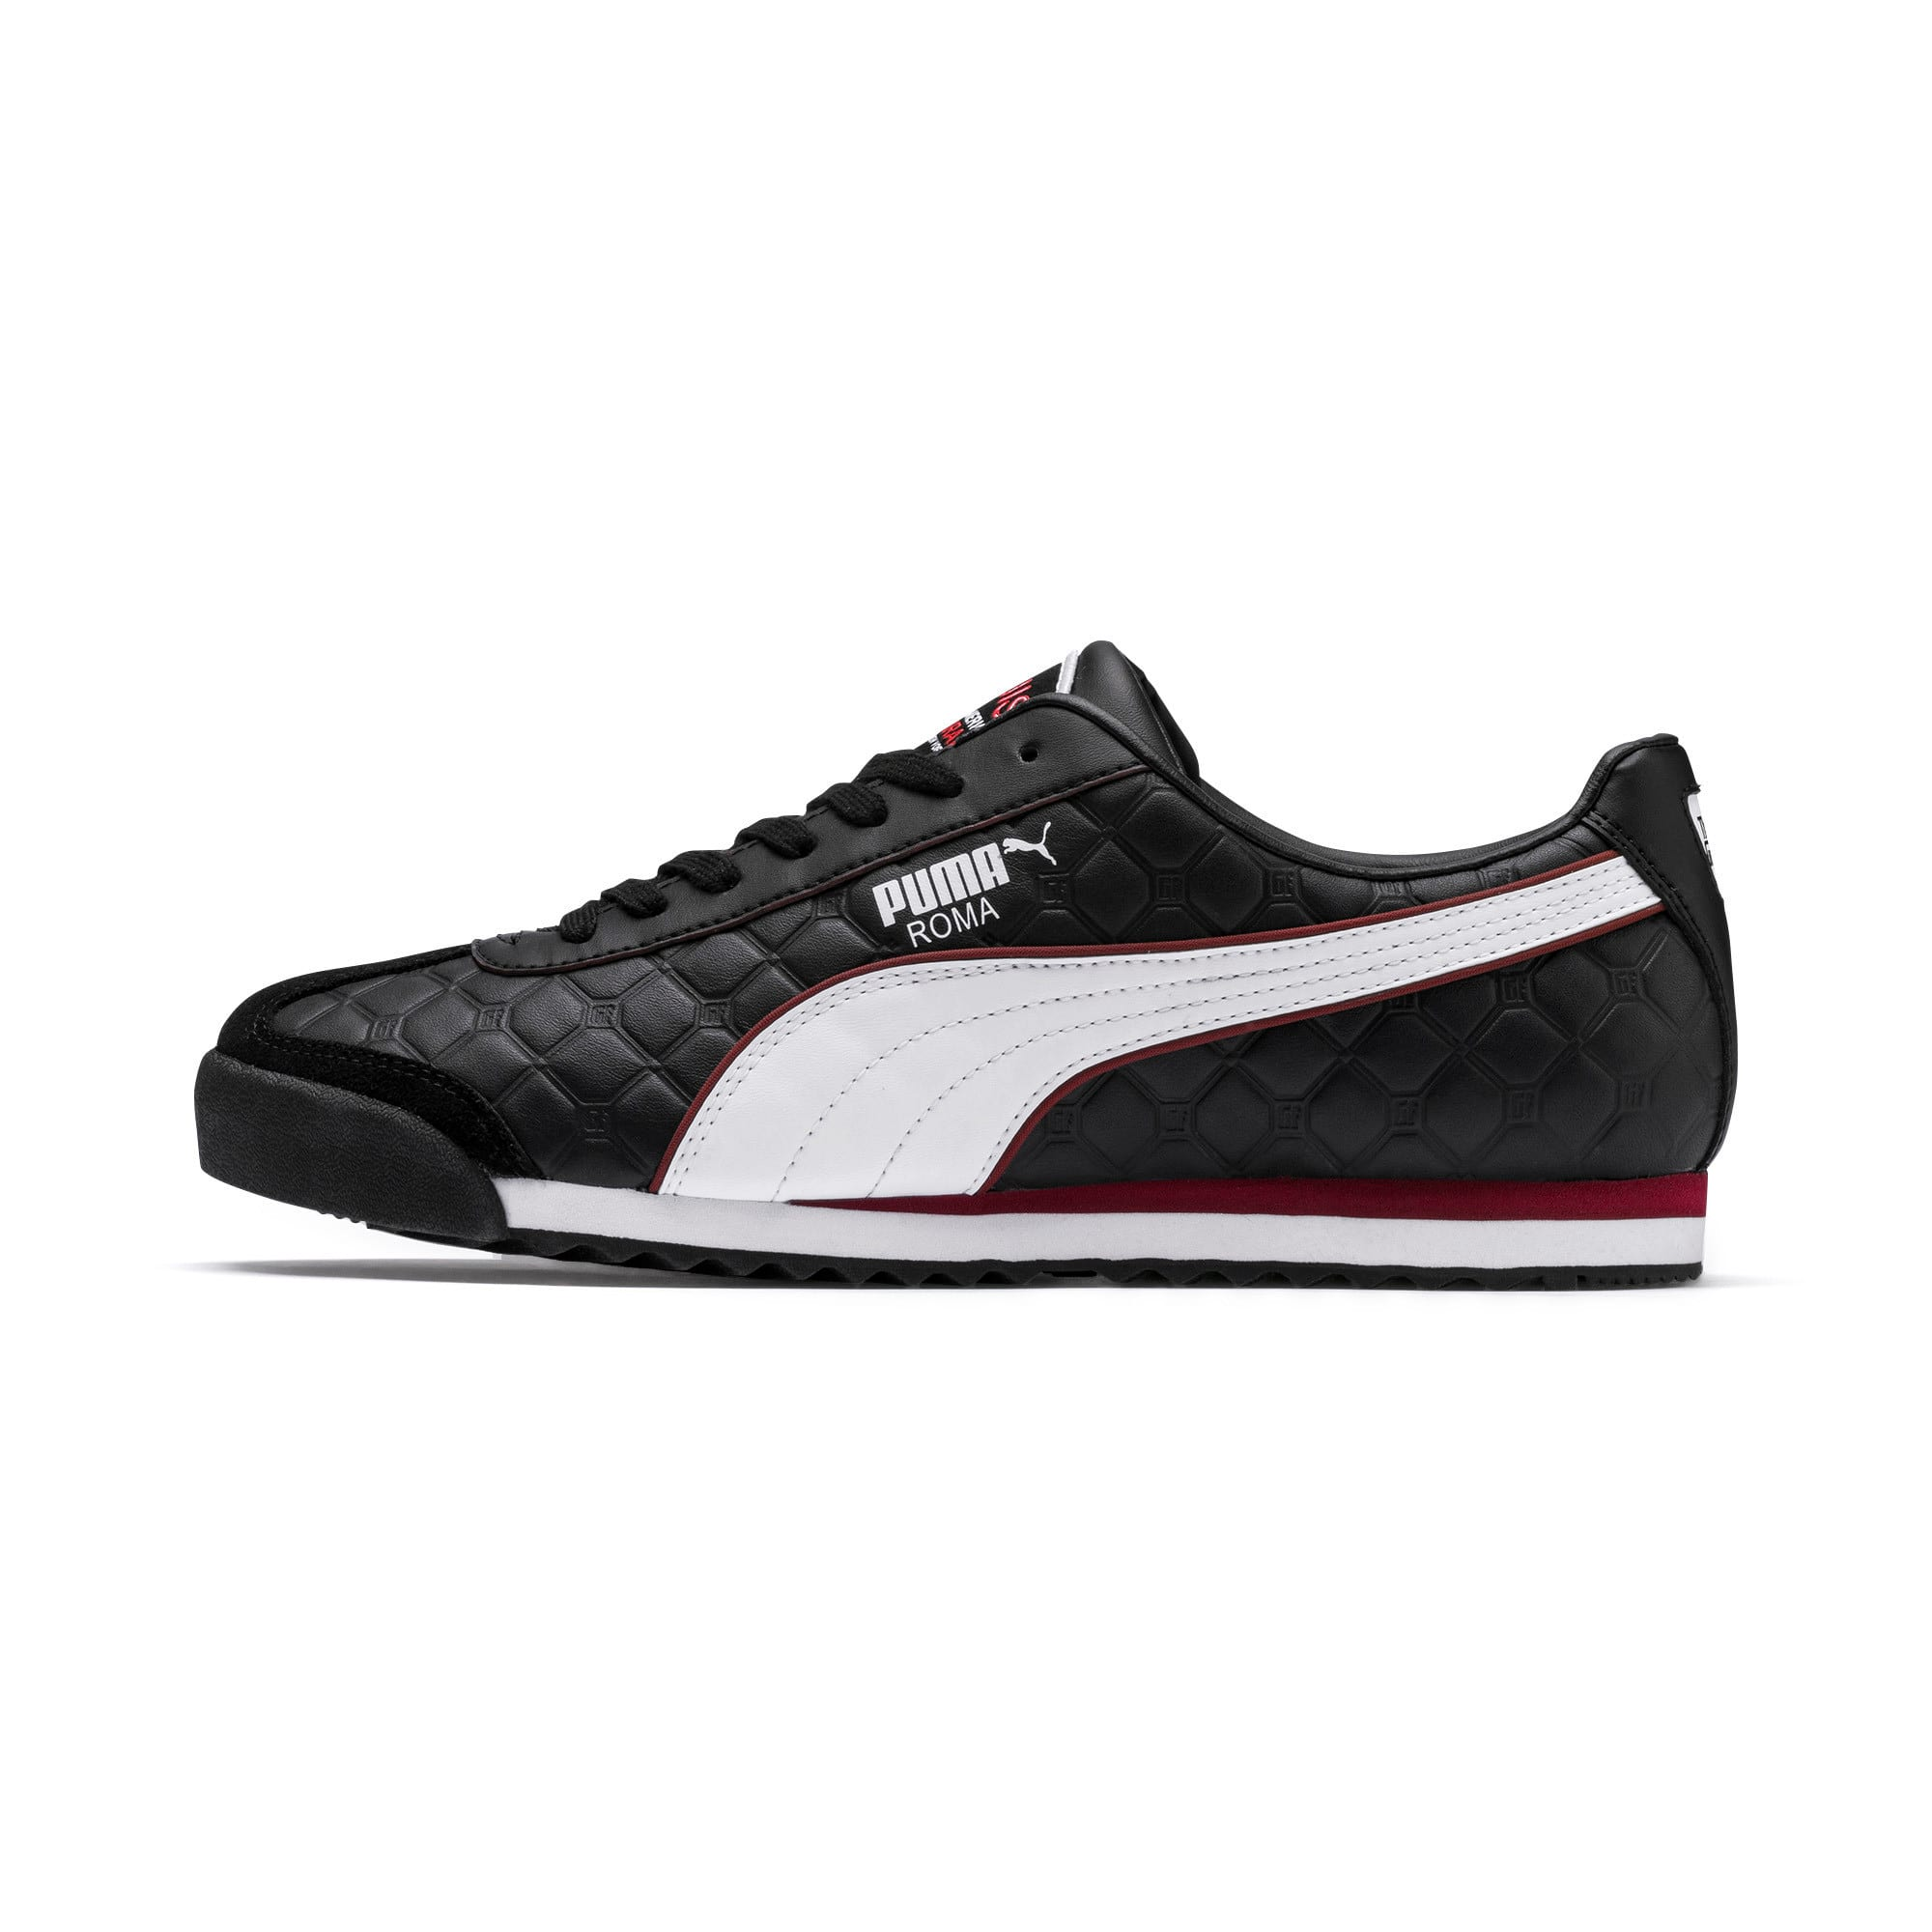 PUMA x THE GODFATHER Roma Louis Sneakers, Puma Black-Fired Brick, large